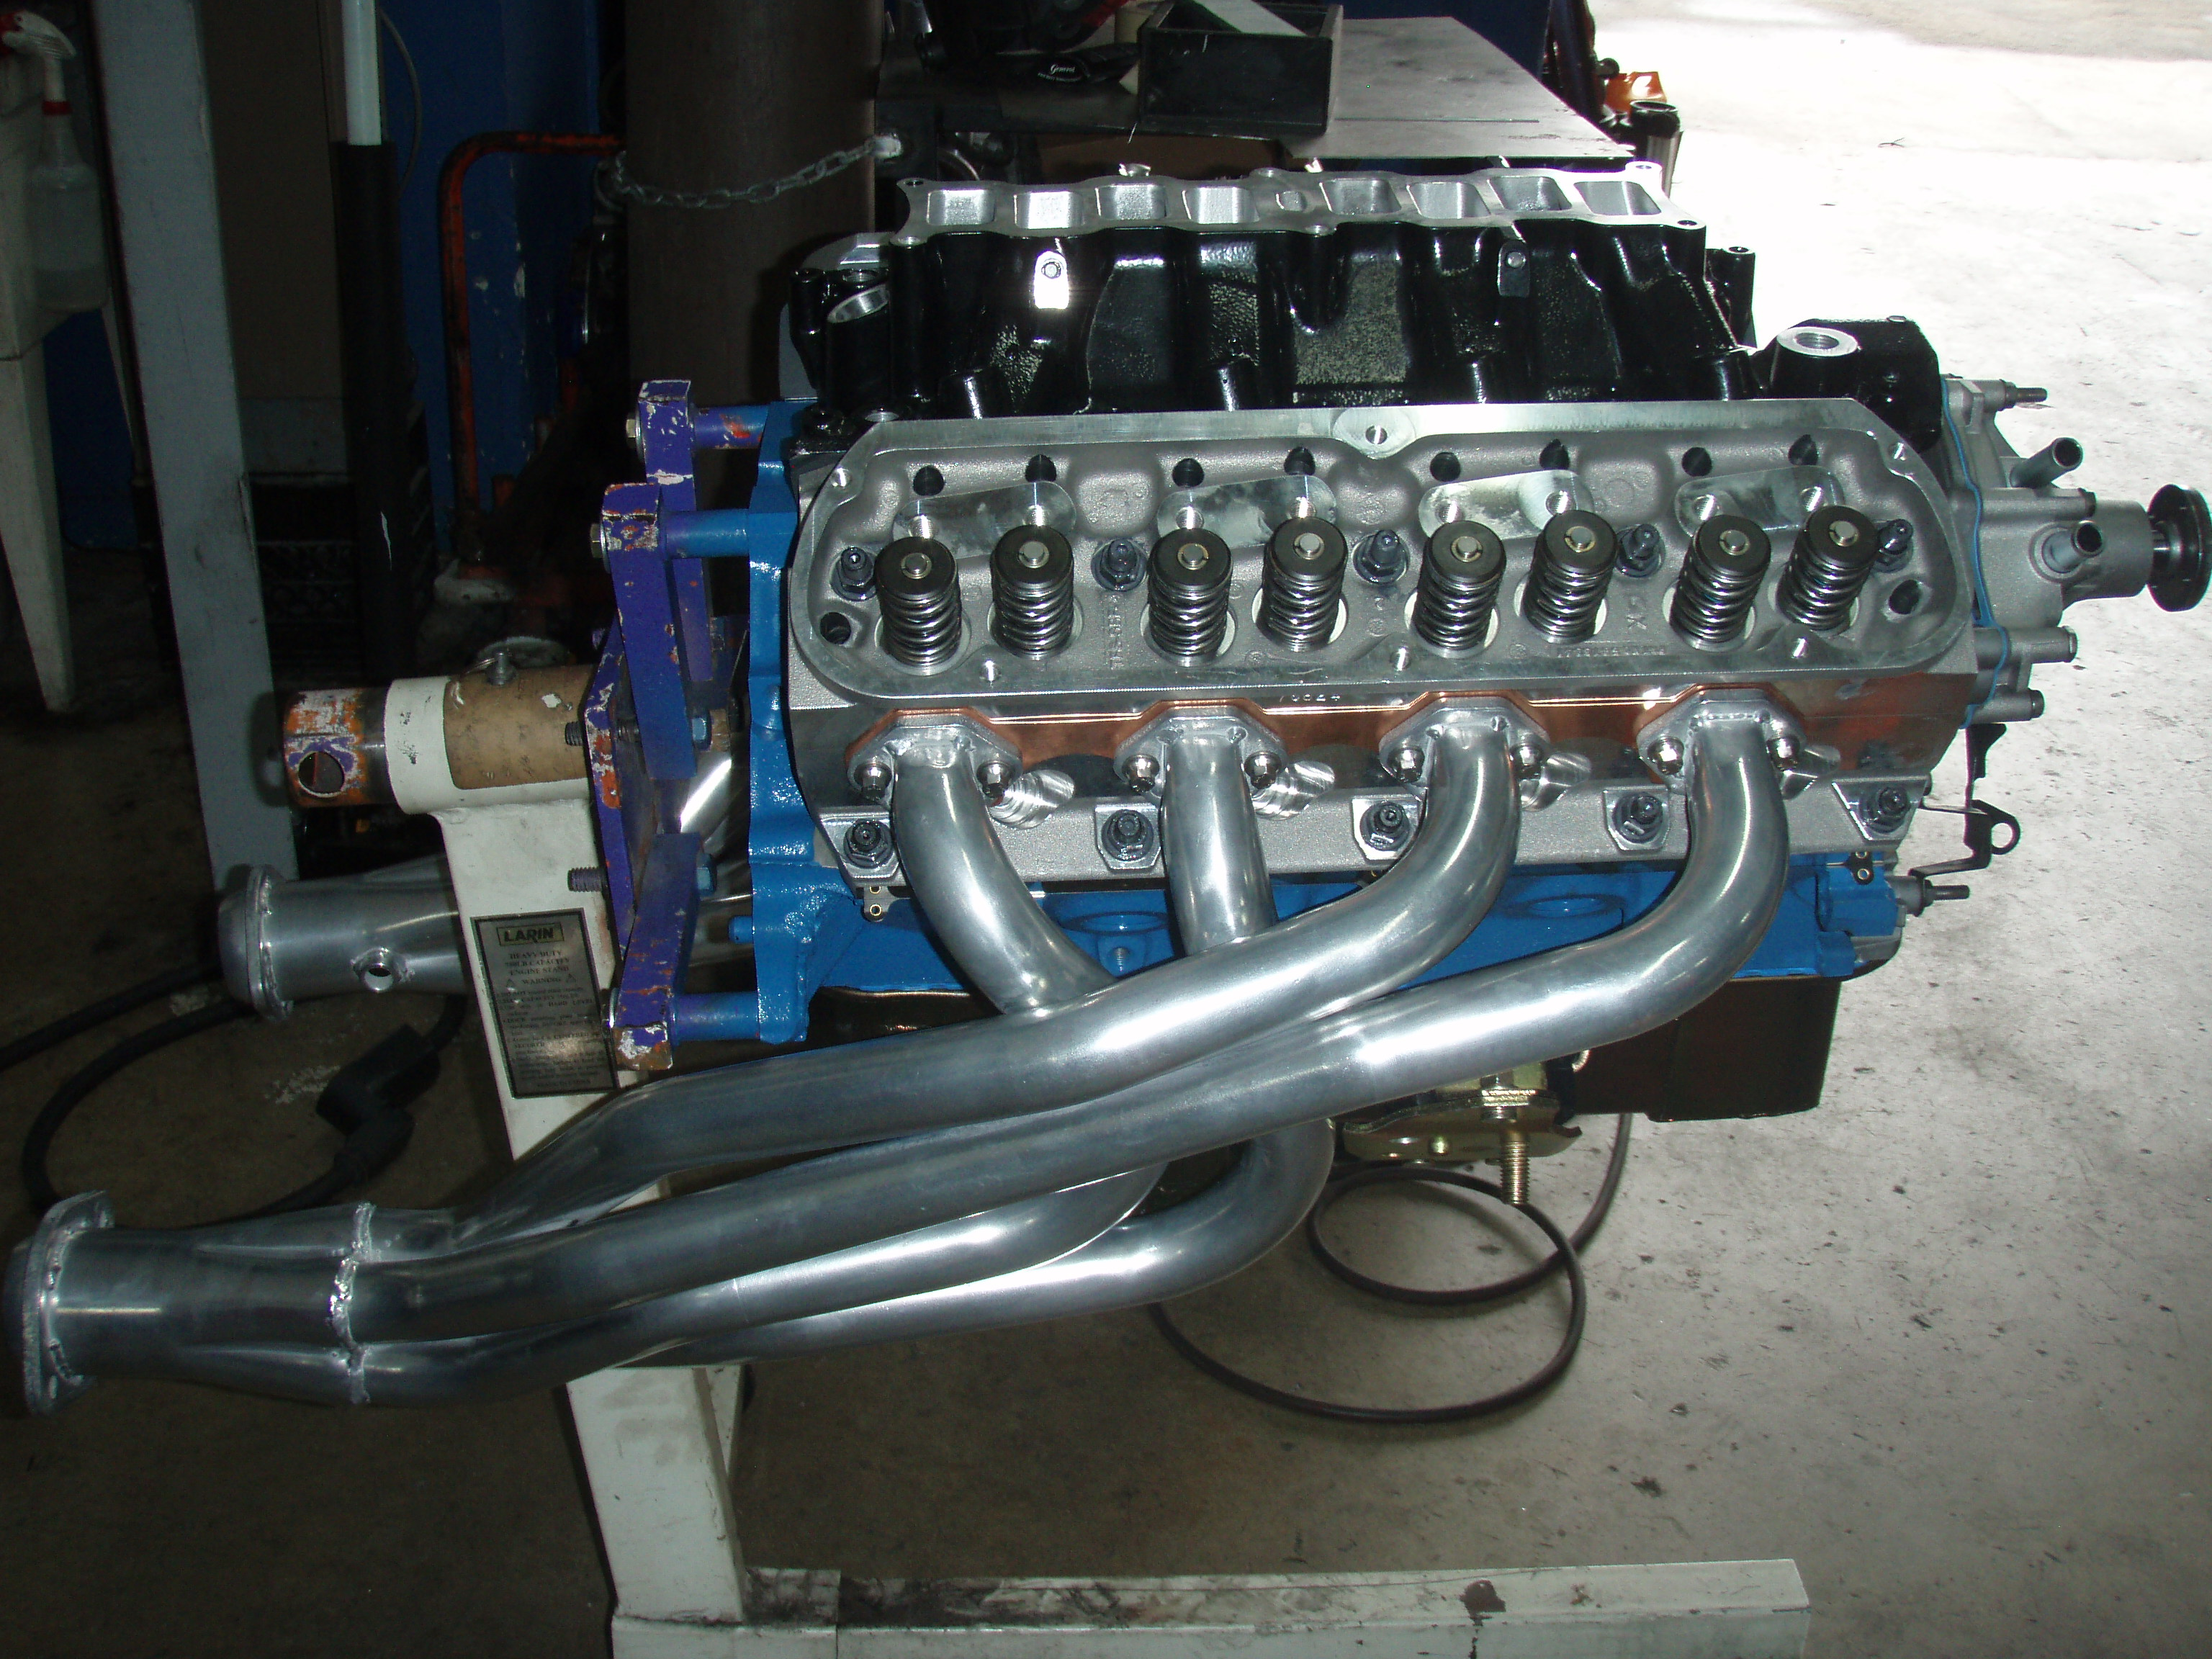 Click image for larger version  Name:Motor1.jpg Views:83 Size:1.45 MB ID:190938